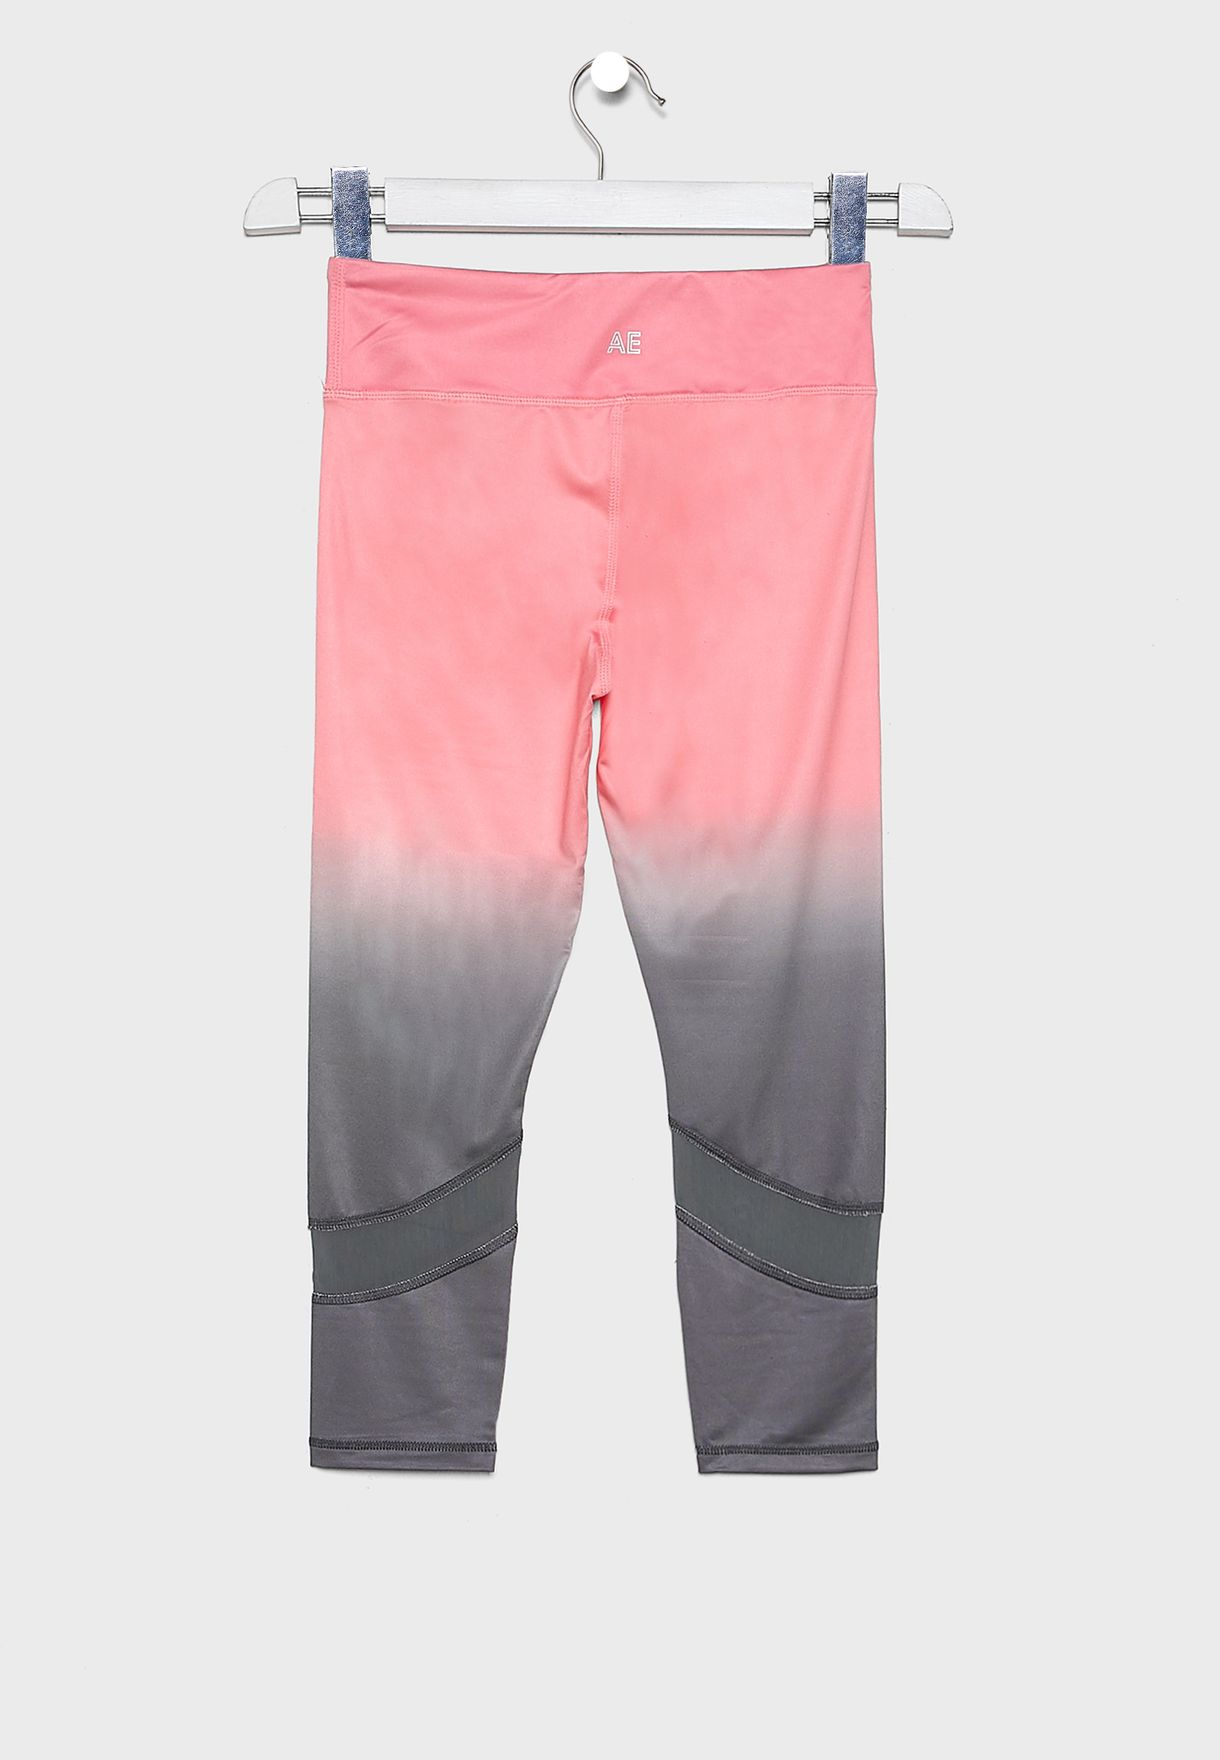 Kids 3/4 Color Block Legging